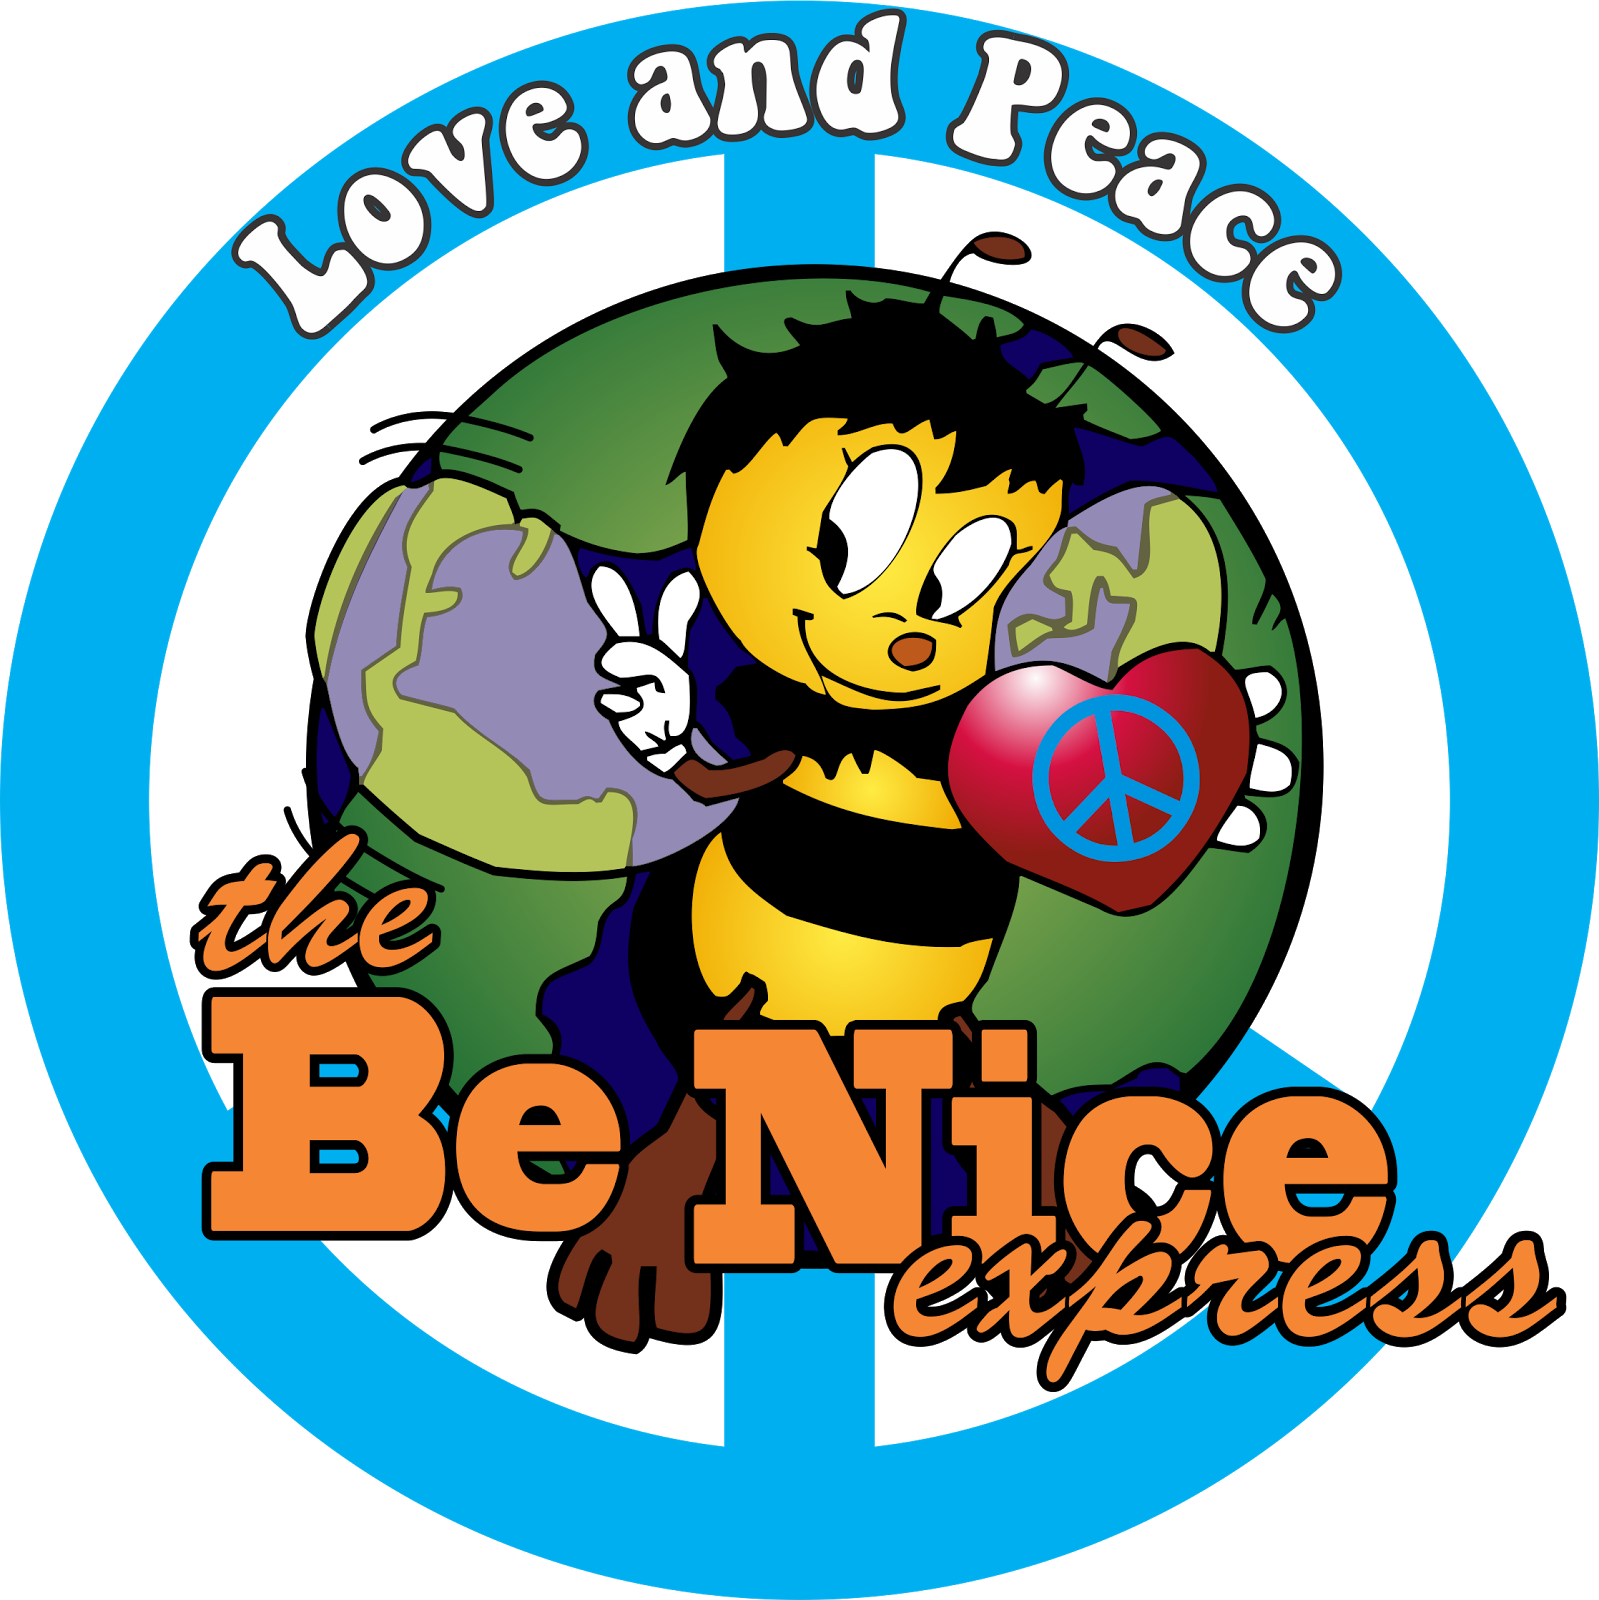 The be nice express. Donation clipart livelihood project